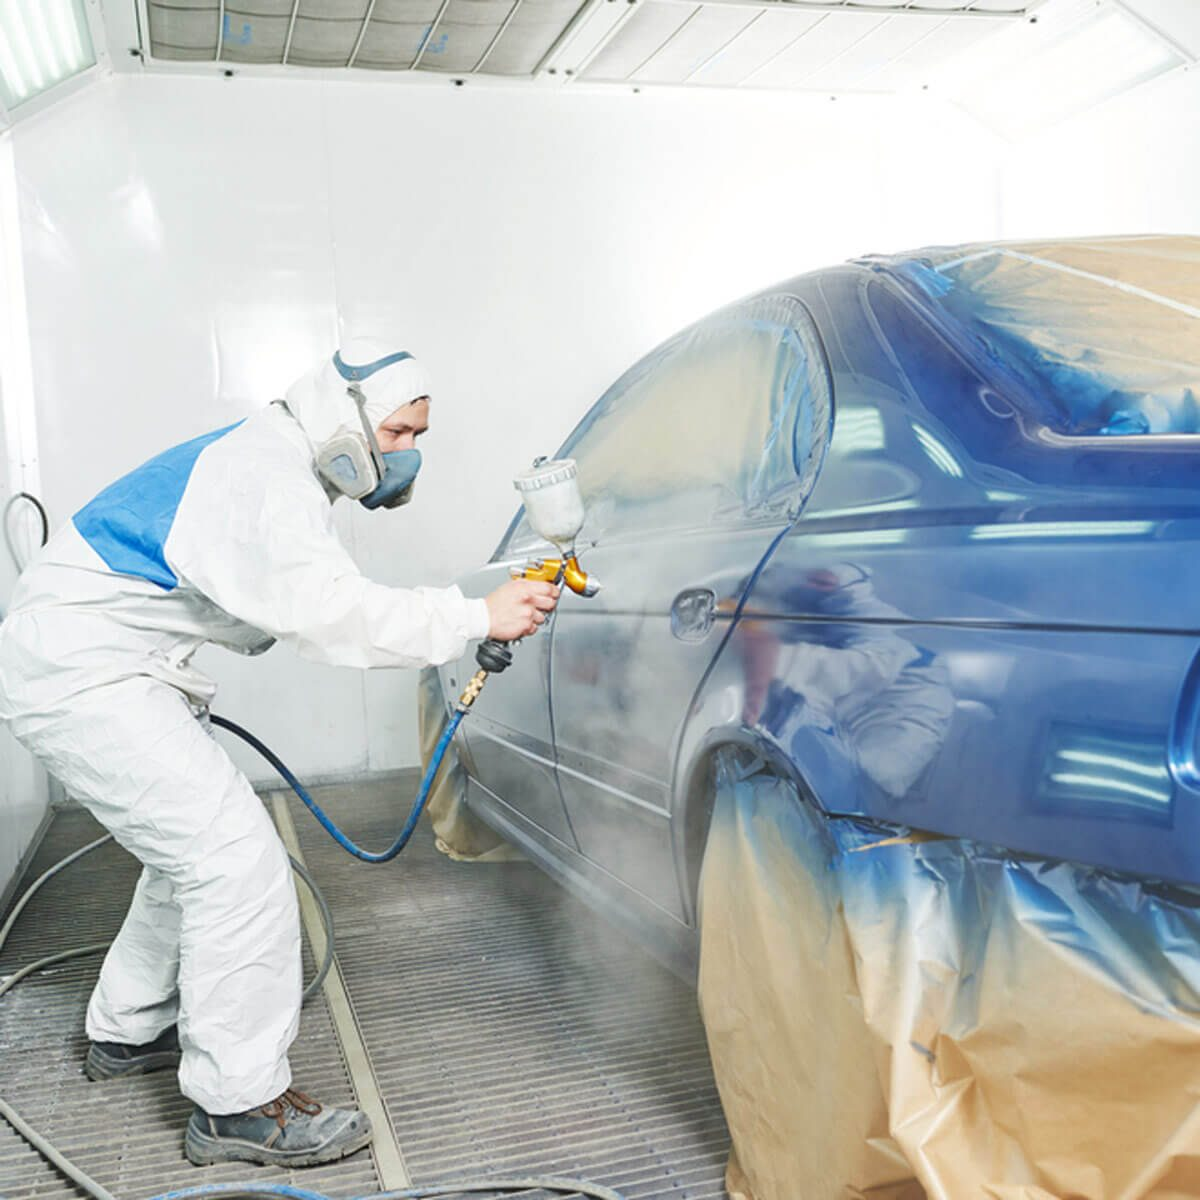 dfh3_shutterstock_350662691 paint sprayer car